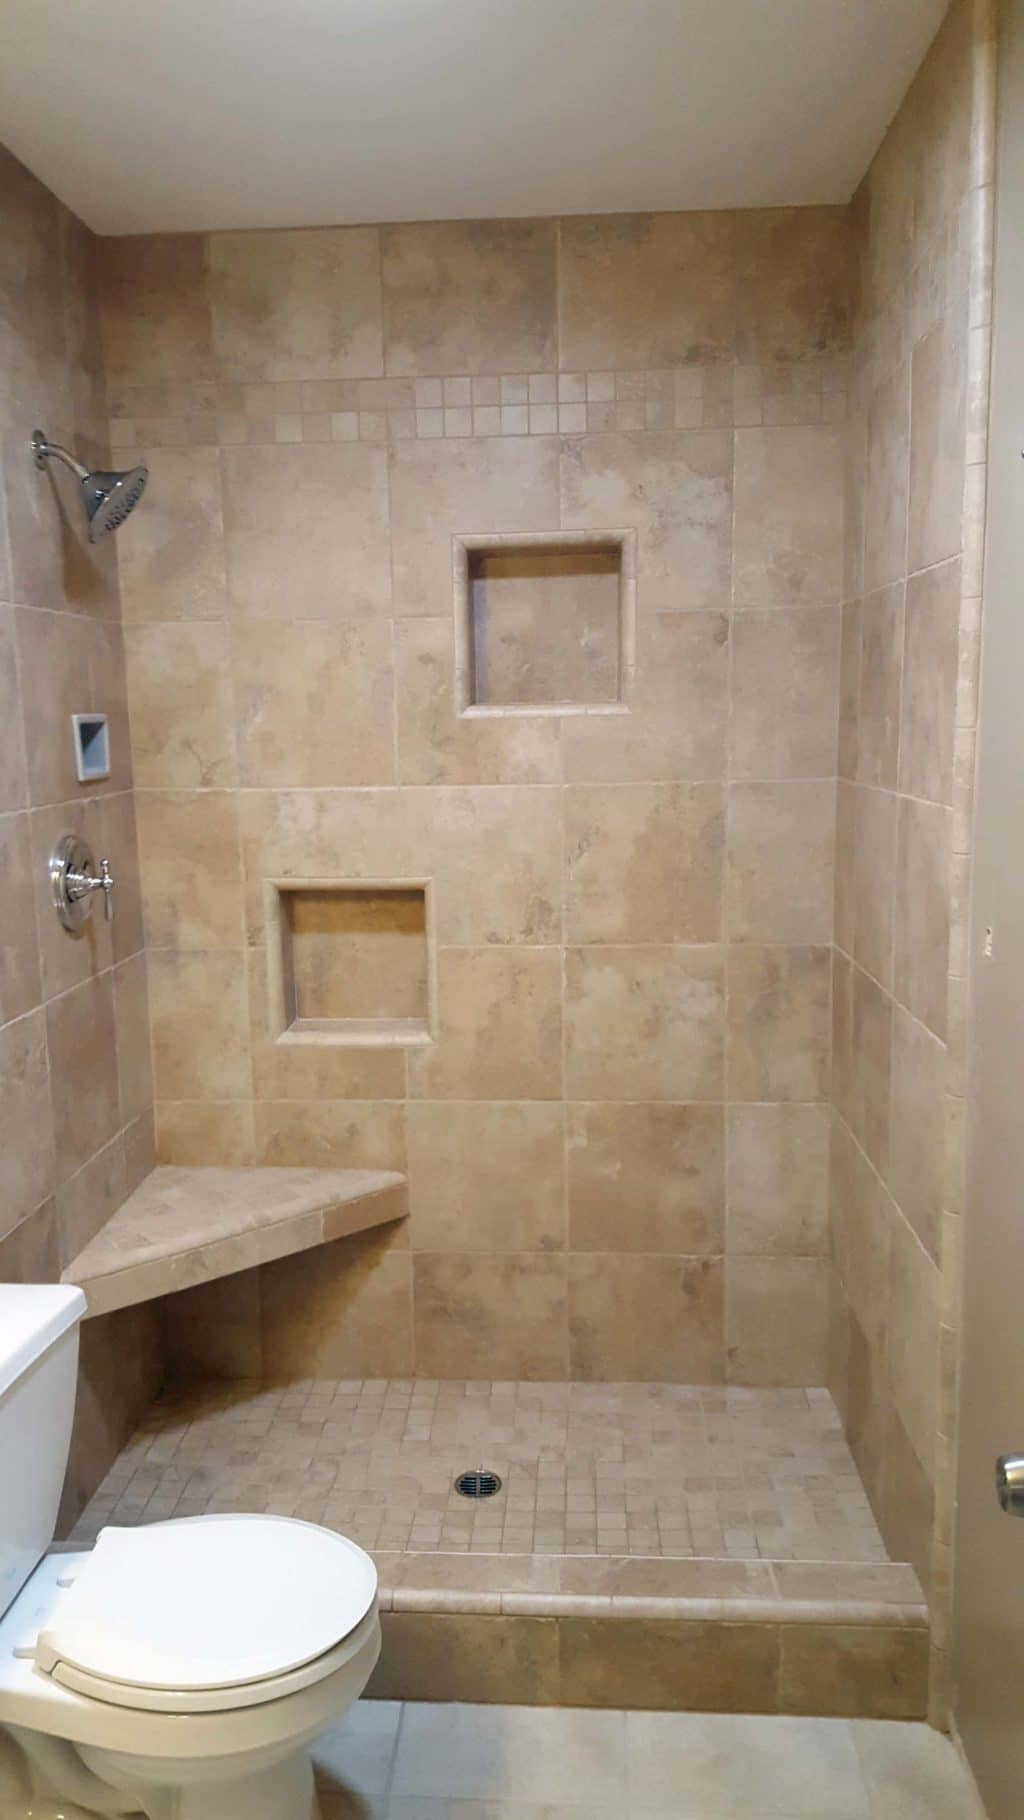 Tile Shower With Corner Bench Seat